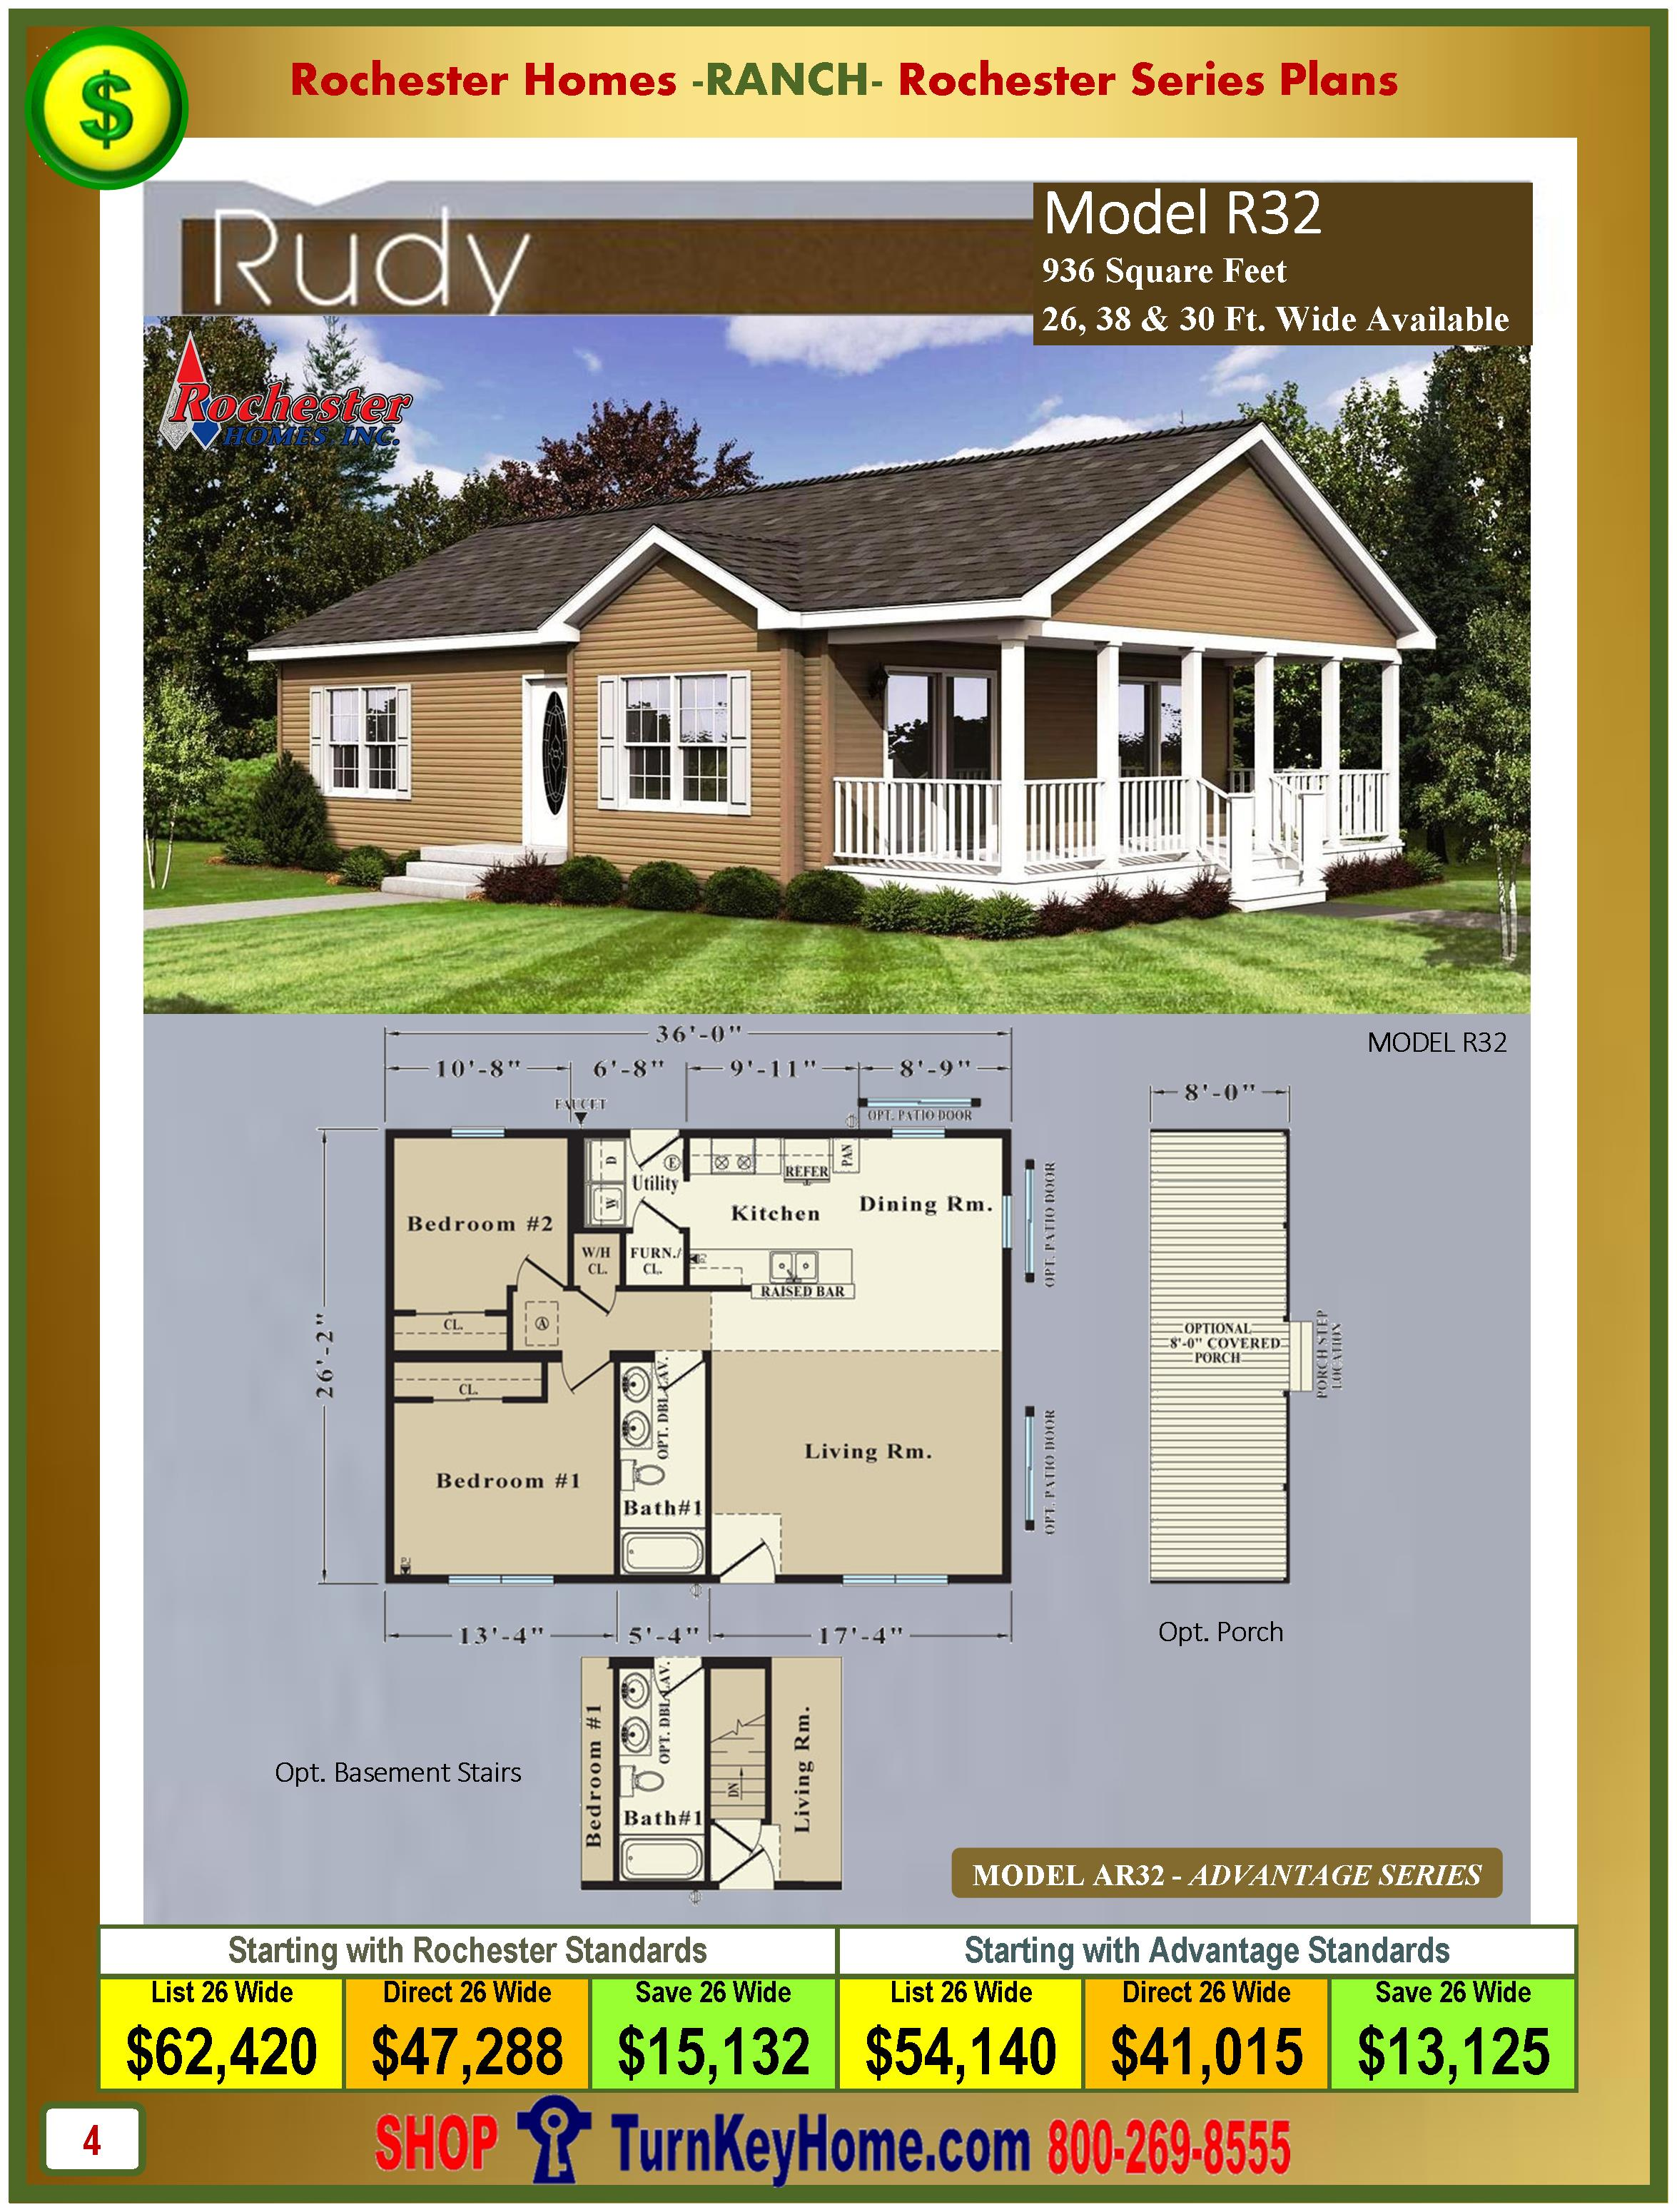 Ranch modular home prices from rochester homes inc ranch for New construction ranch style homes in illinois